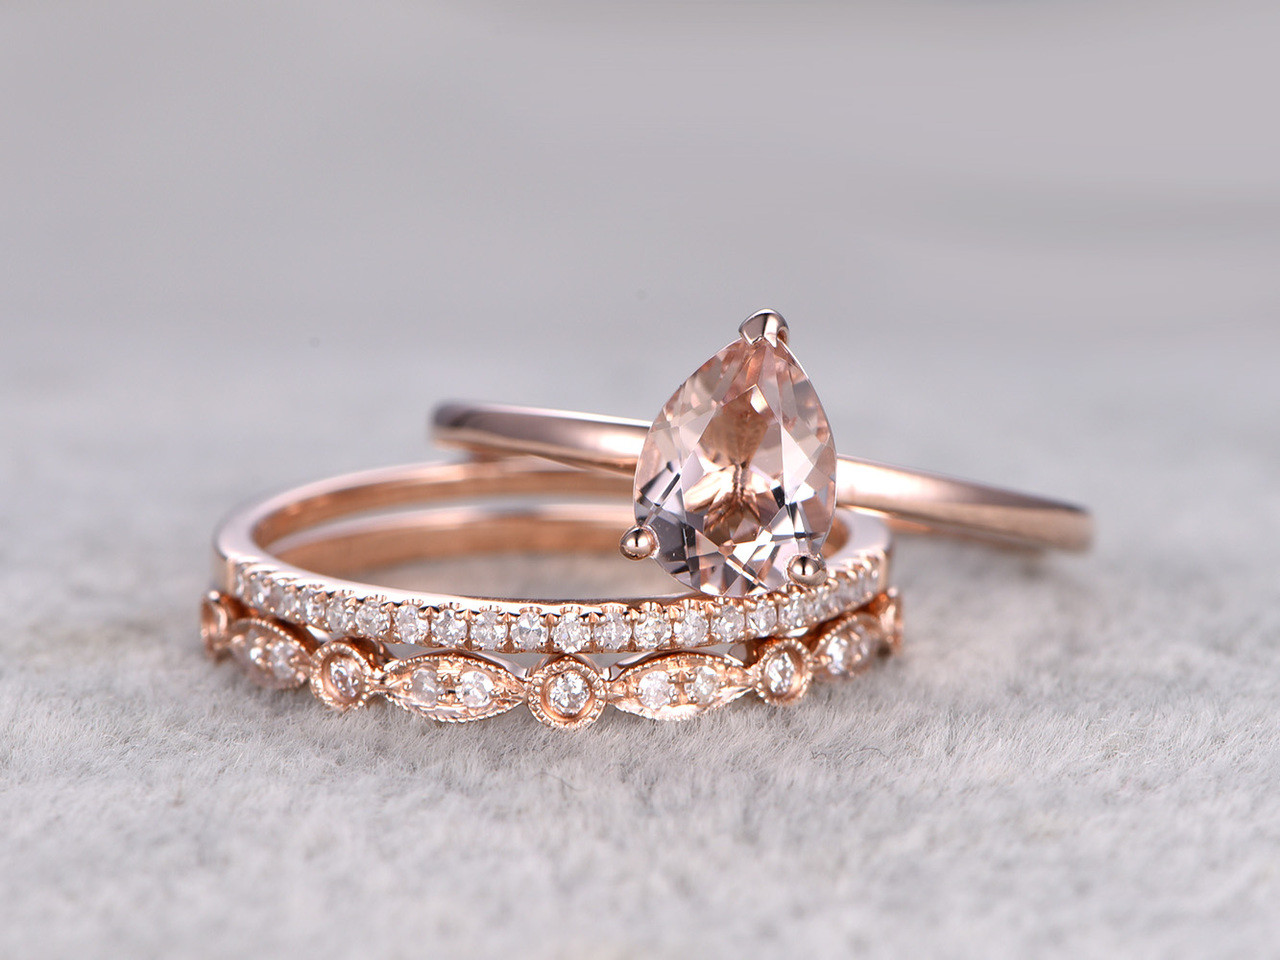 3pcs Pear Shaped Solitaire Morganite Wedding Set Antique Diamond Bridal Ring  14k Rose Gold Art Deco